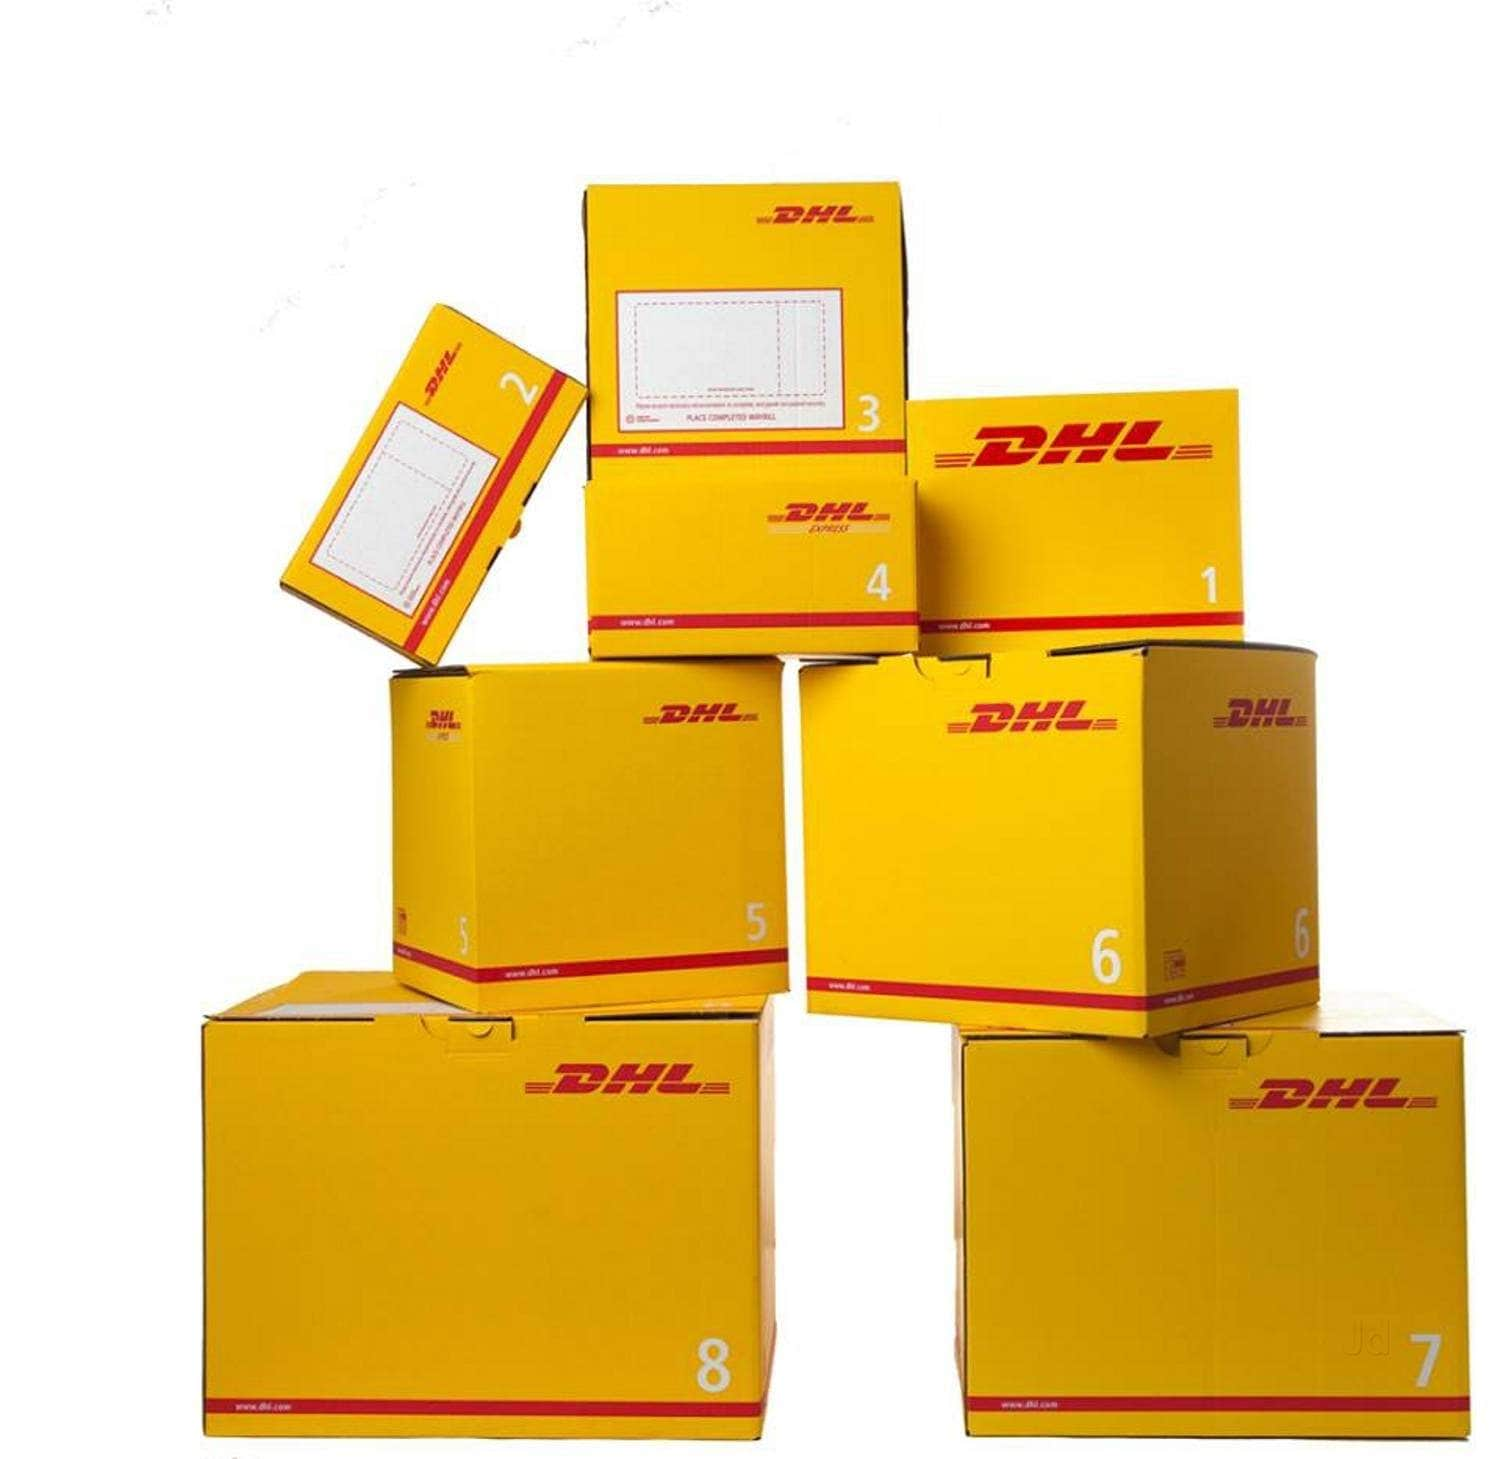 Top 100 Preferred International Courier Services in Kochi MG Road